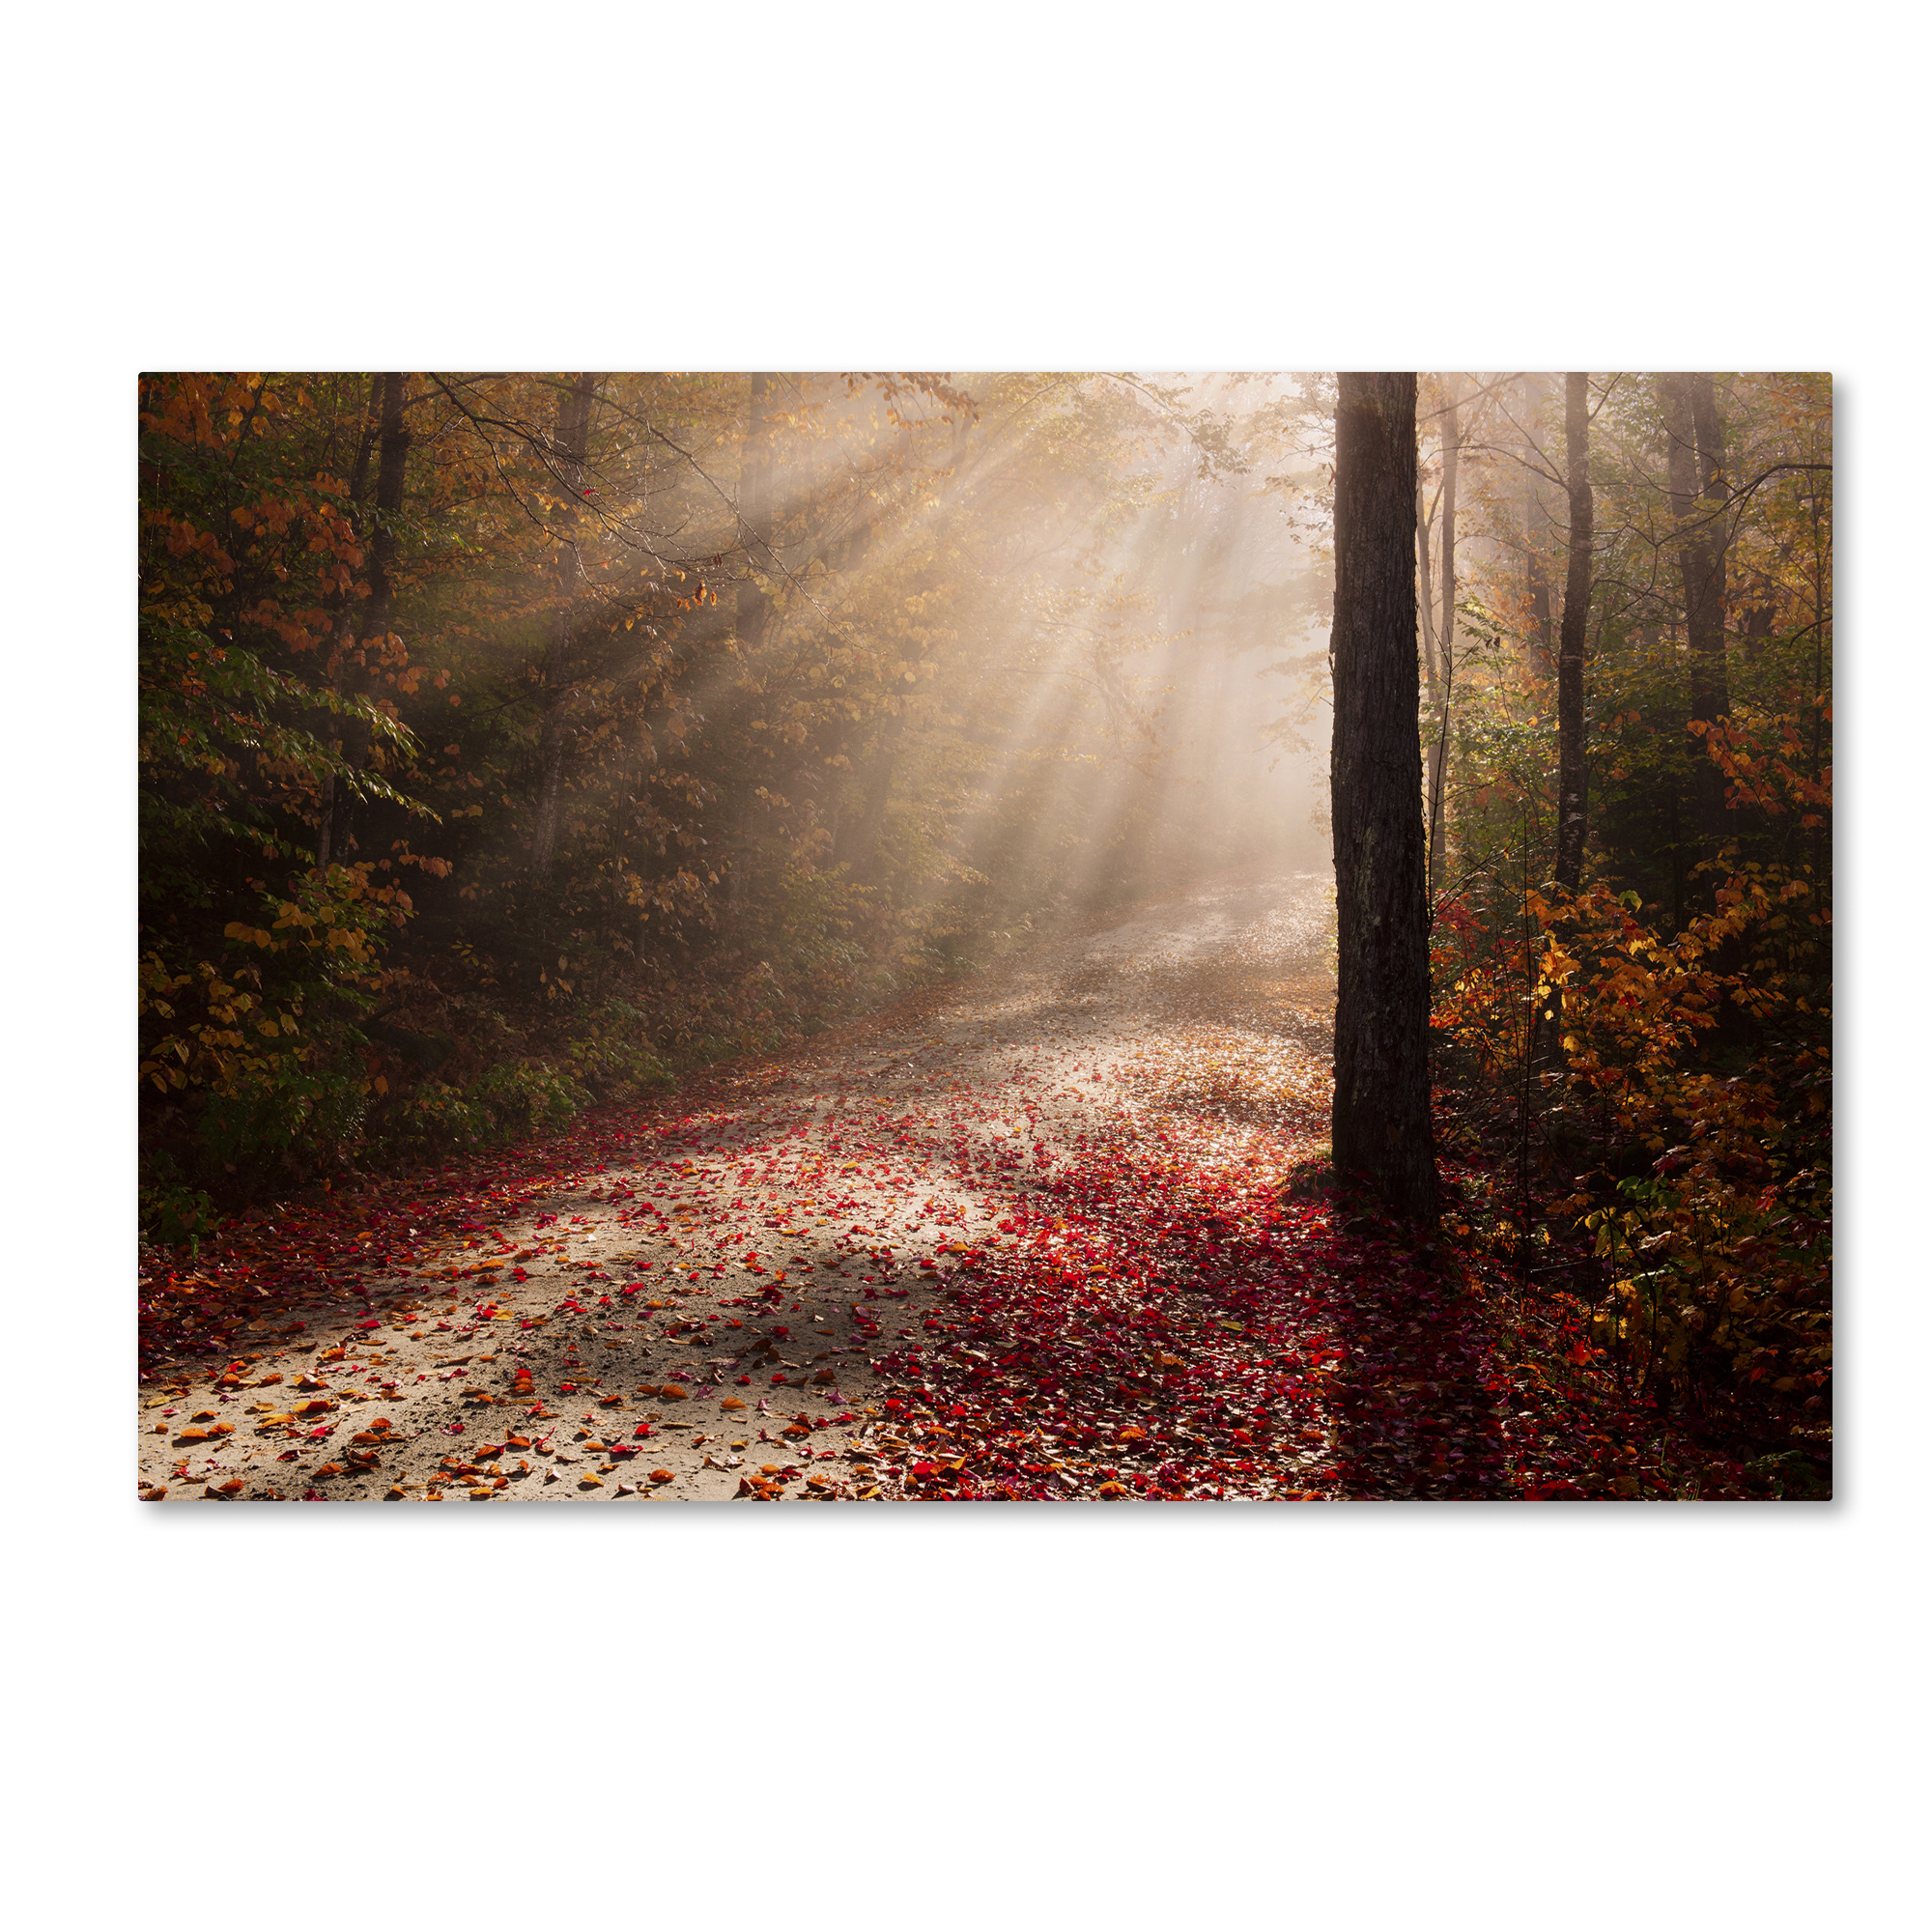 Michael Blanchette Photography 'Light in the Forest' Canvas Art 16 x 24